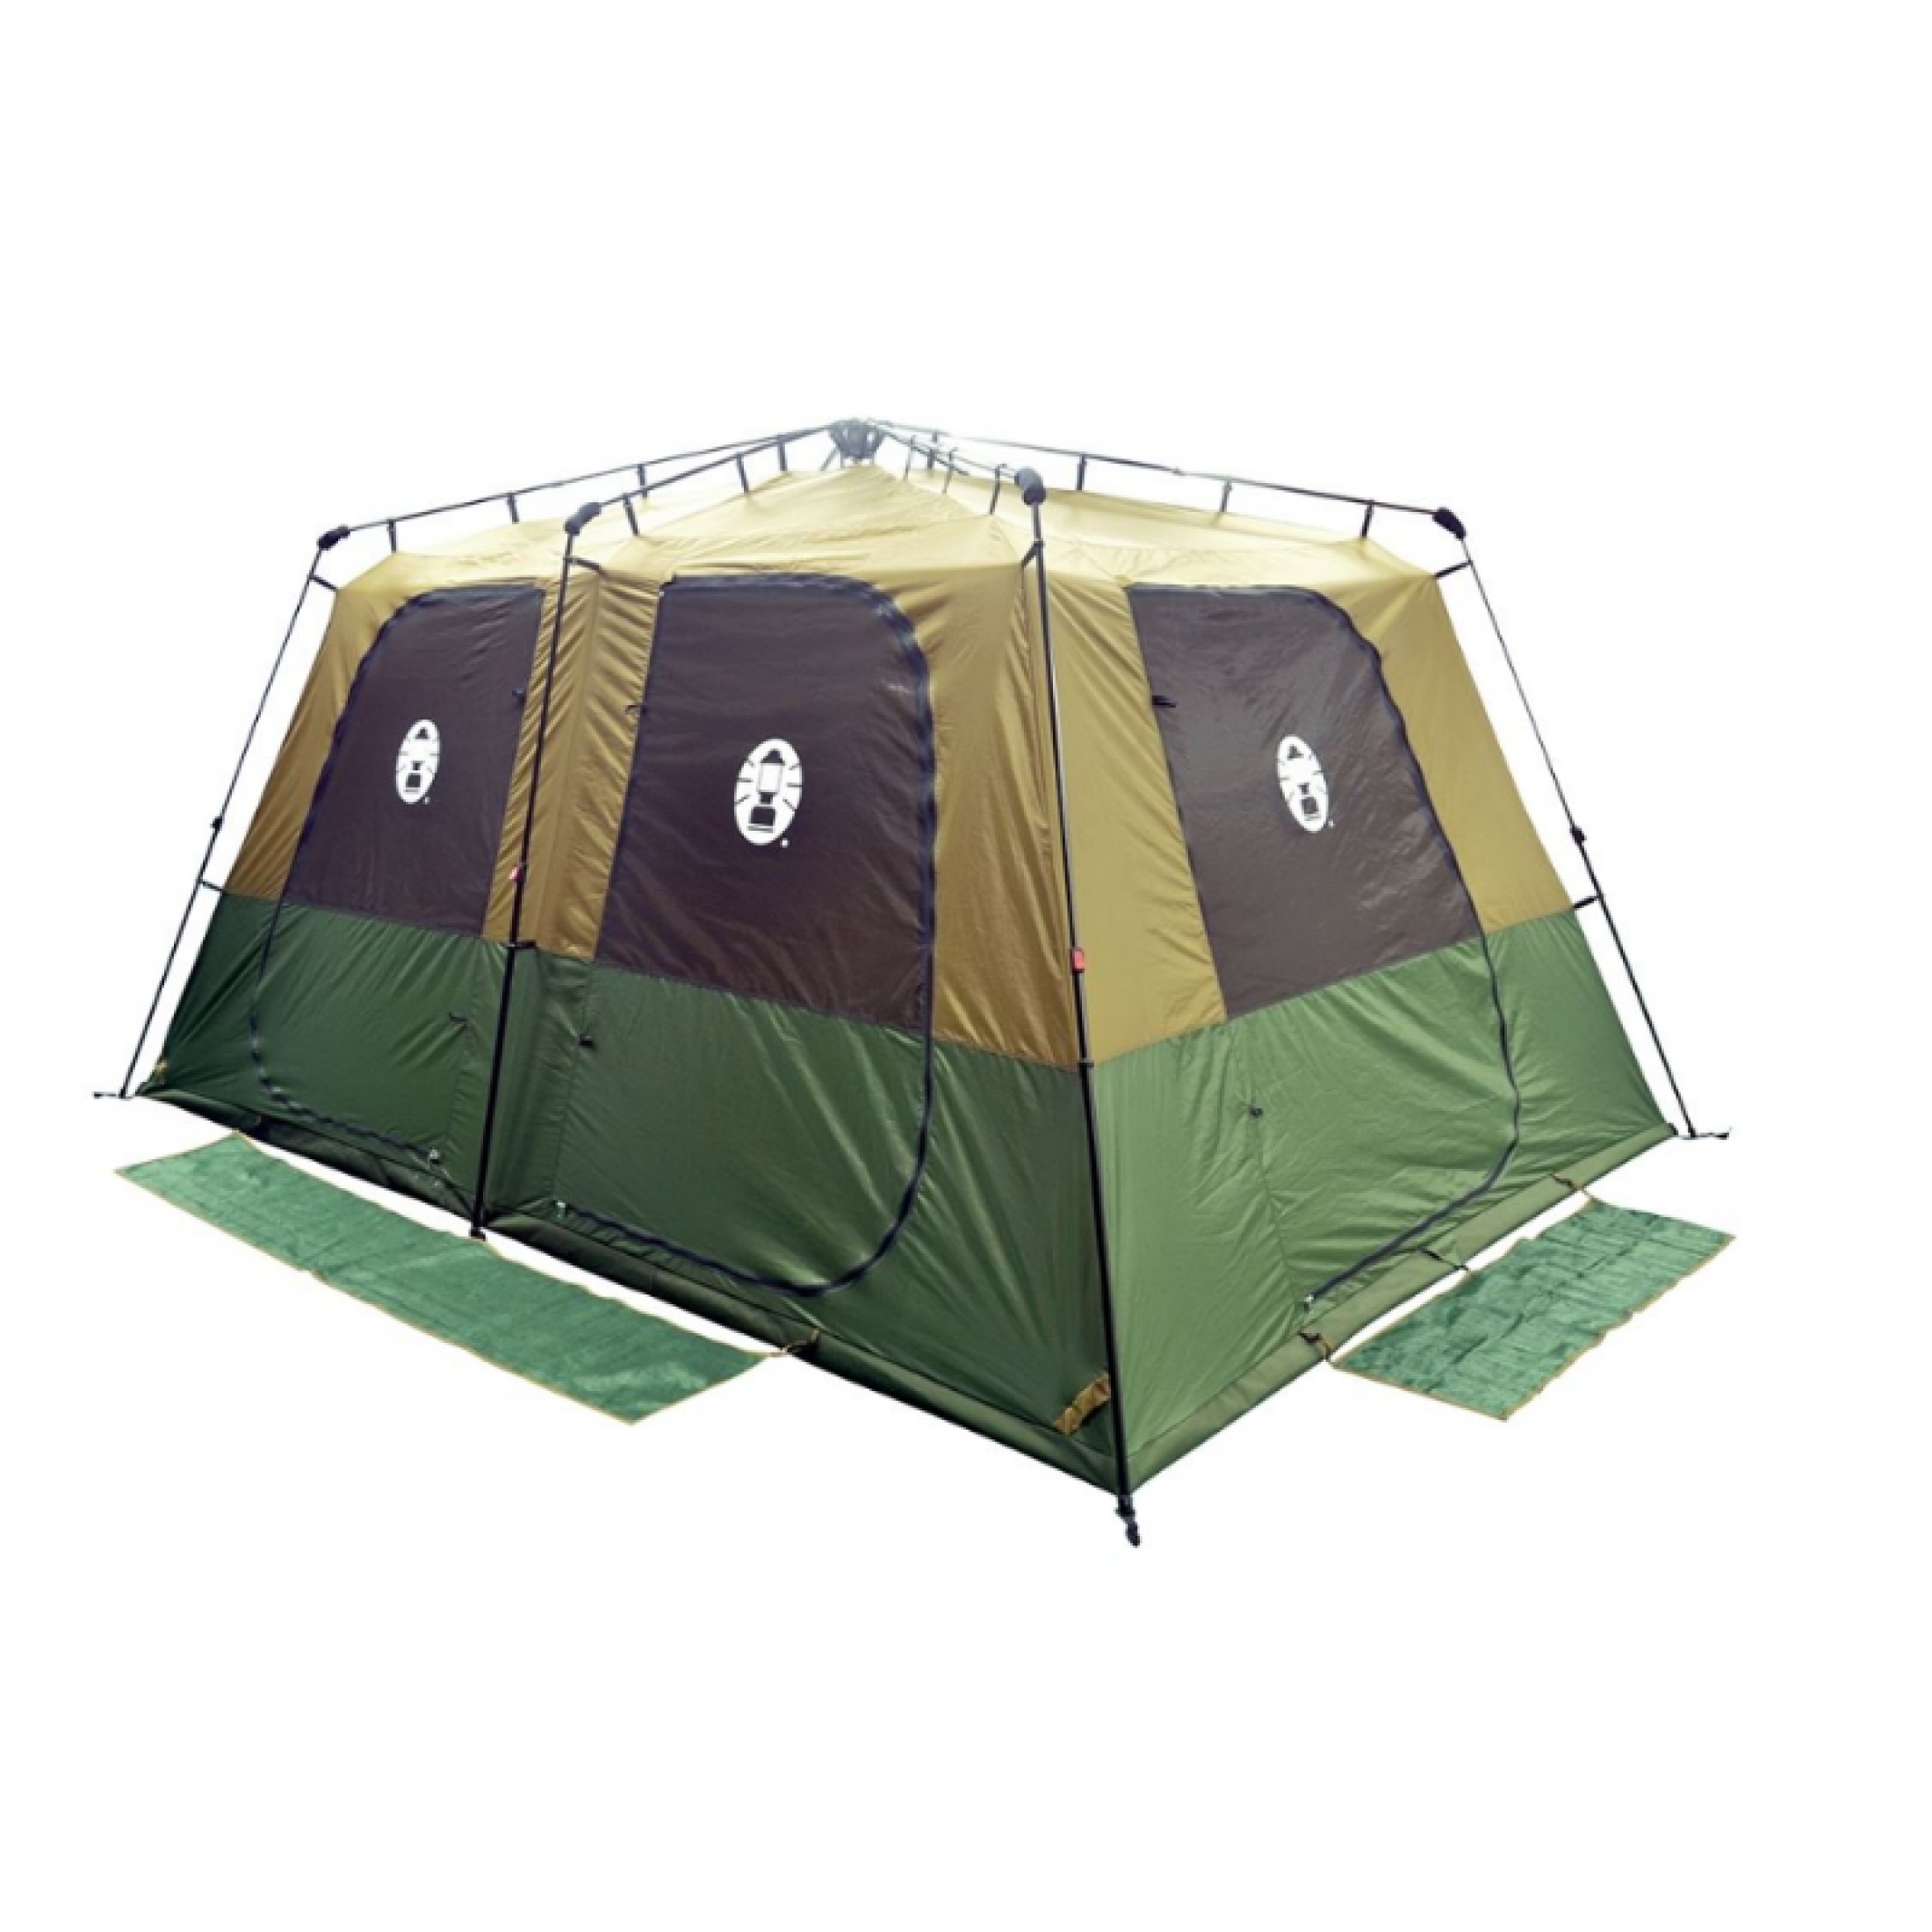 COLEMAN Instant Up Gold Series 10P Tent ; Space for 3 queen airbeds ; Integrated frame for easy pitching